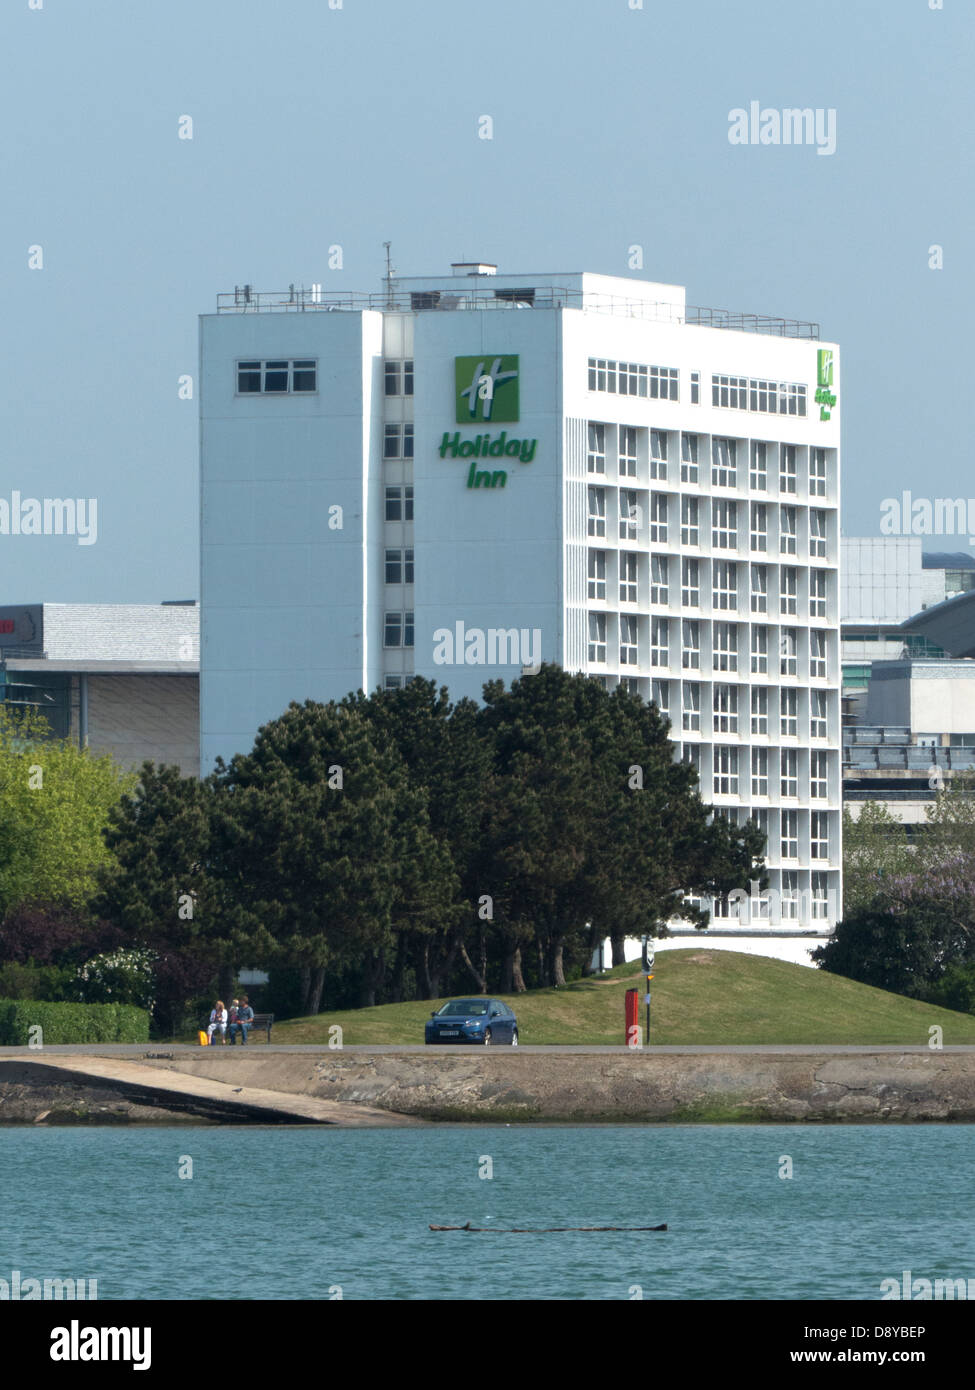 Holiday Inn Southampton a Waterside Hotel - Stock Image